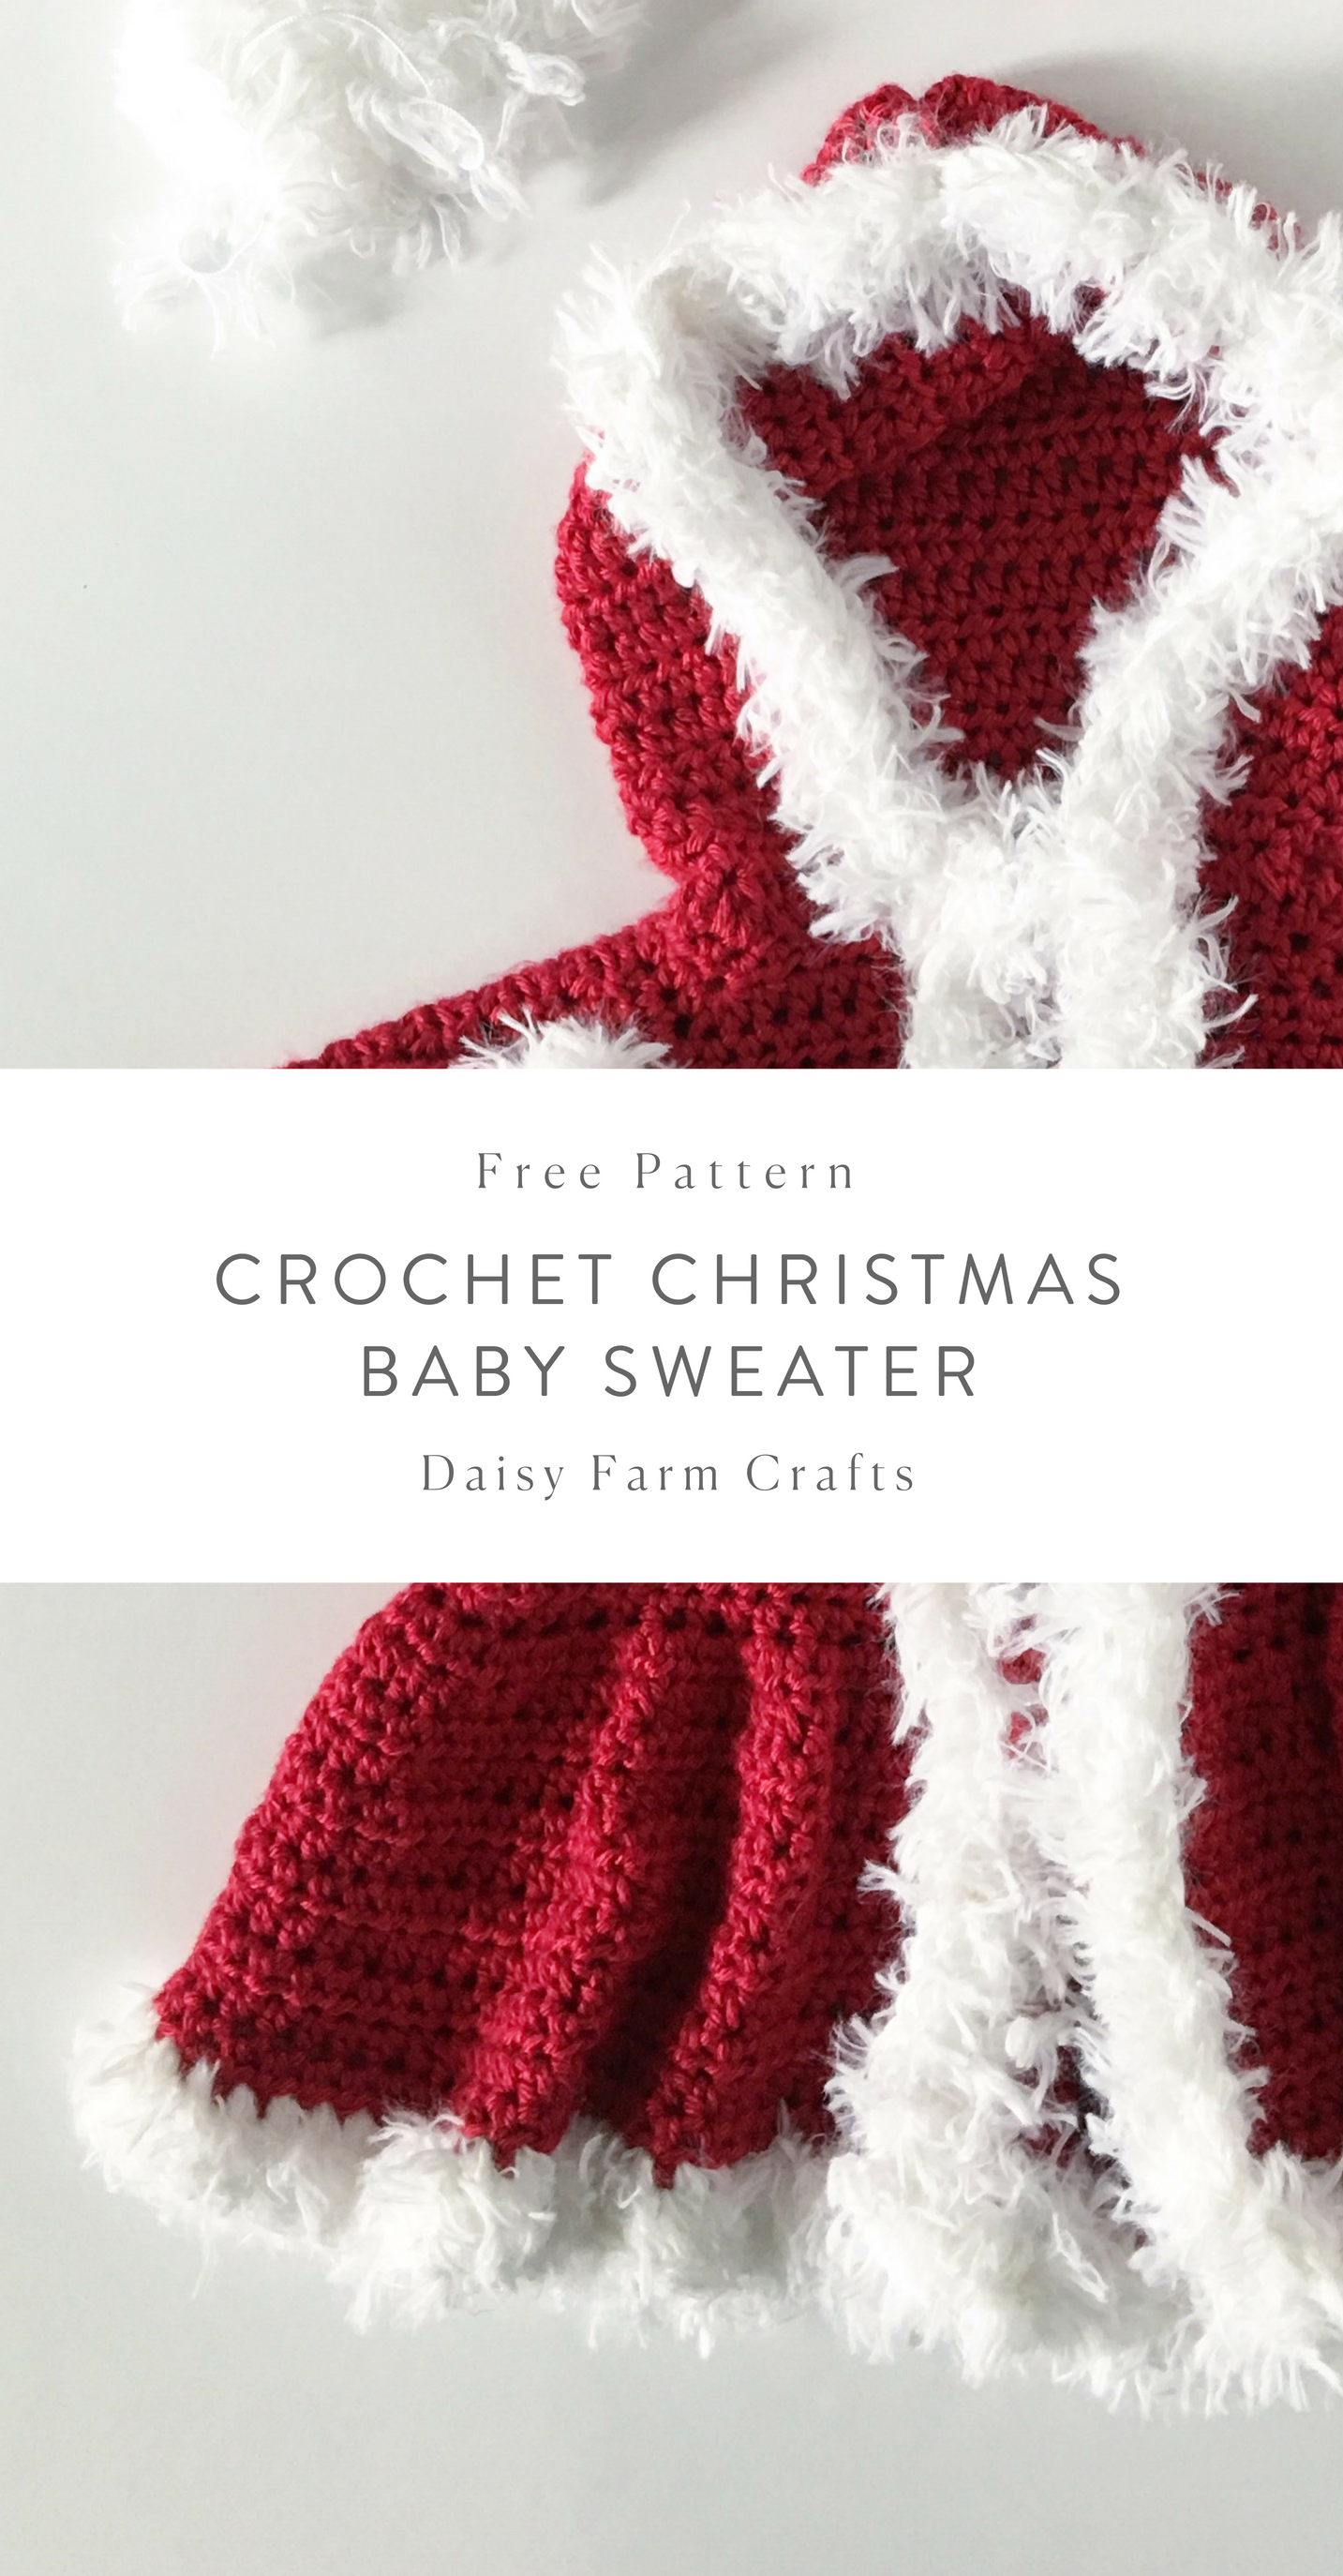 Free Pattern - Crochet Christmas Baby Sweater #crochet | Babies ...